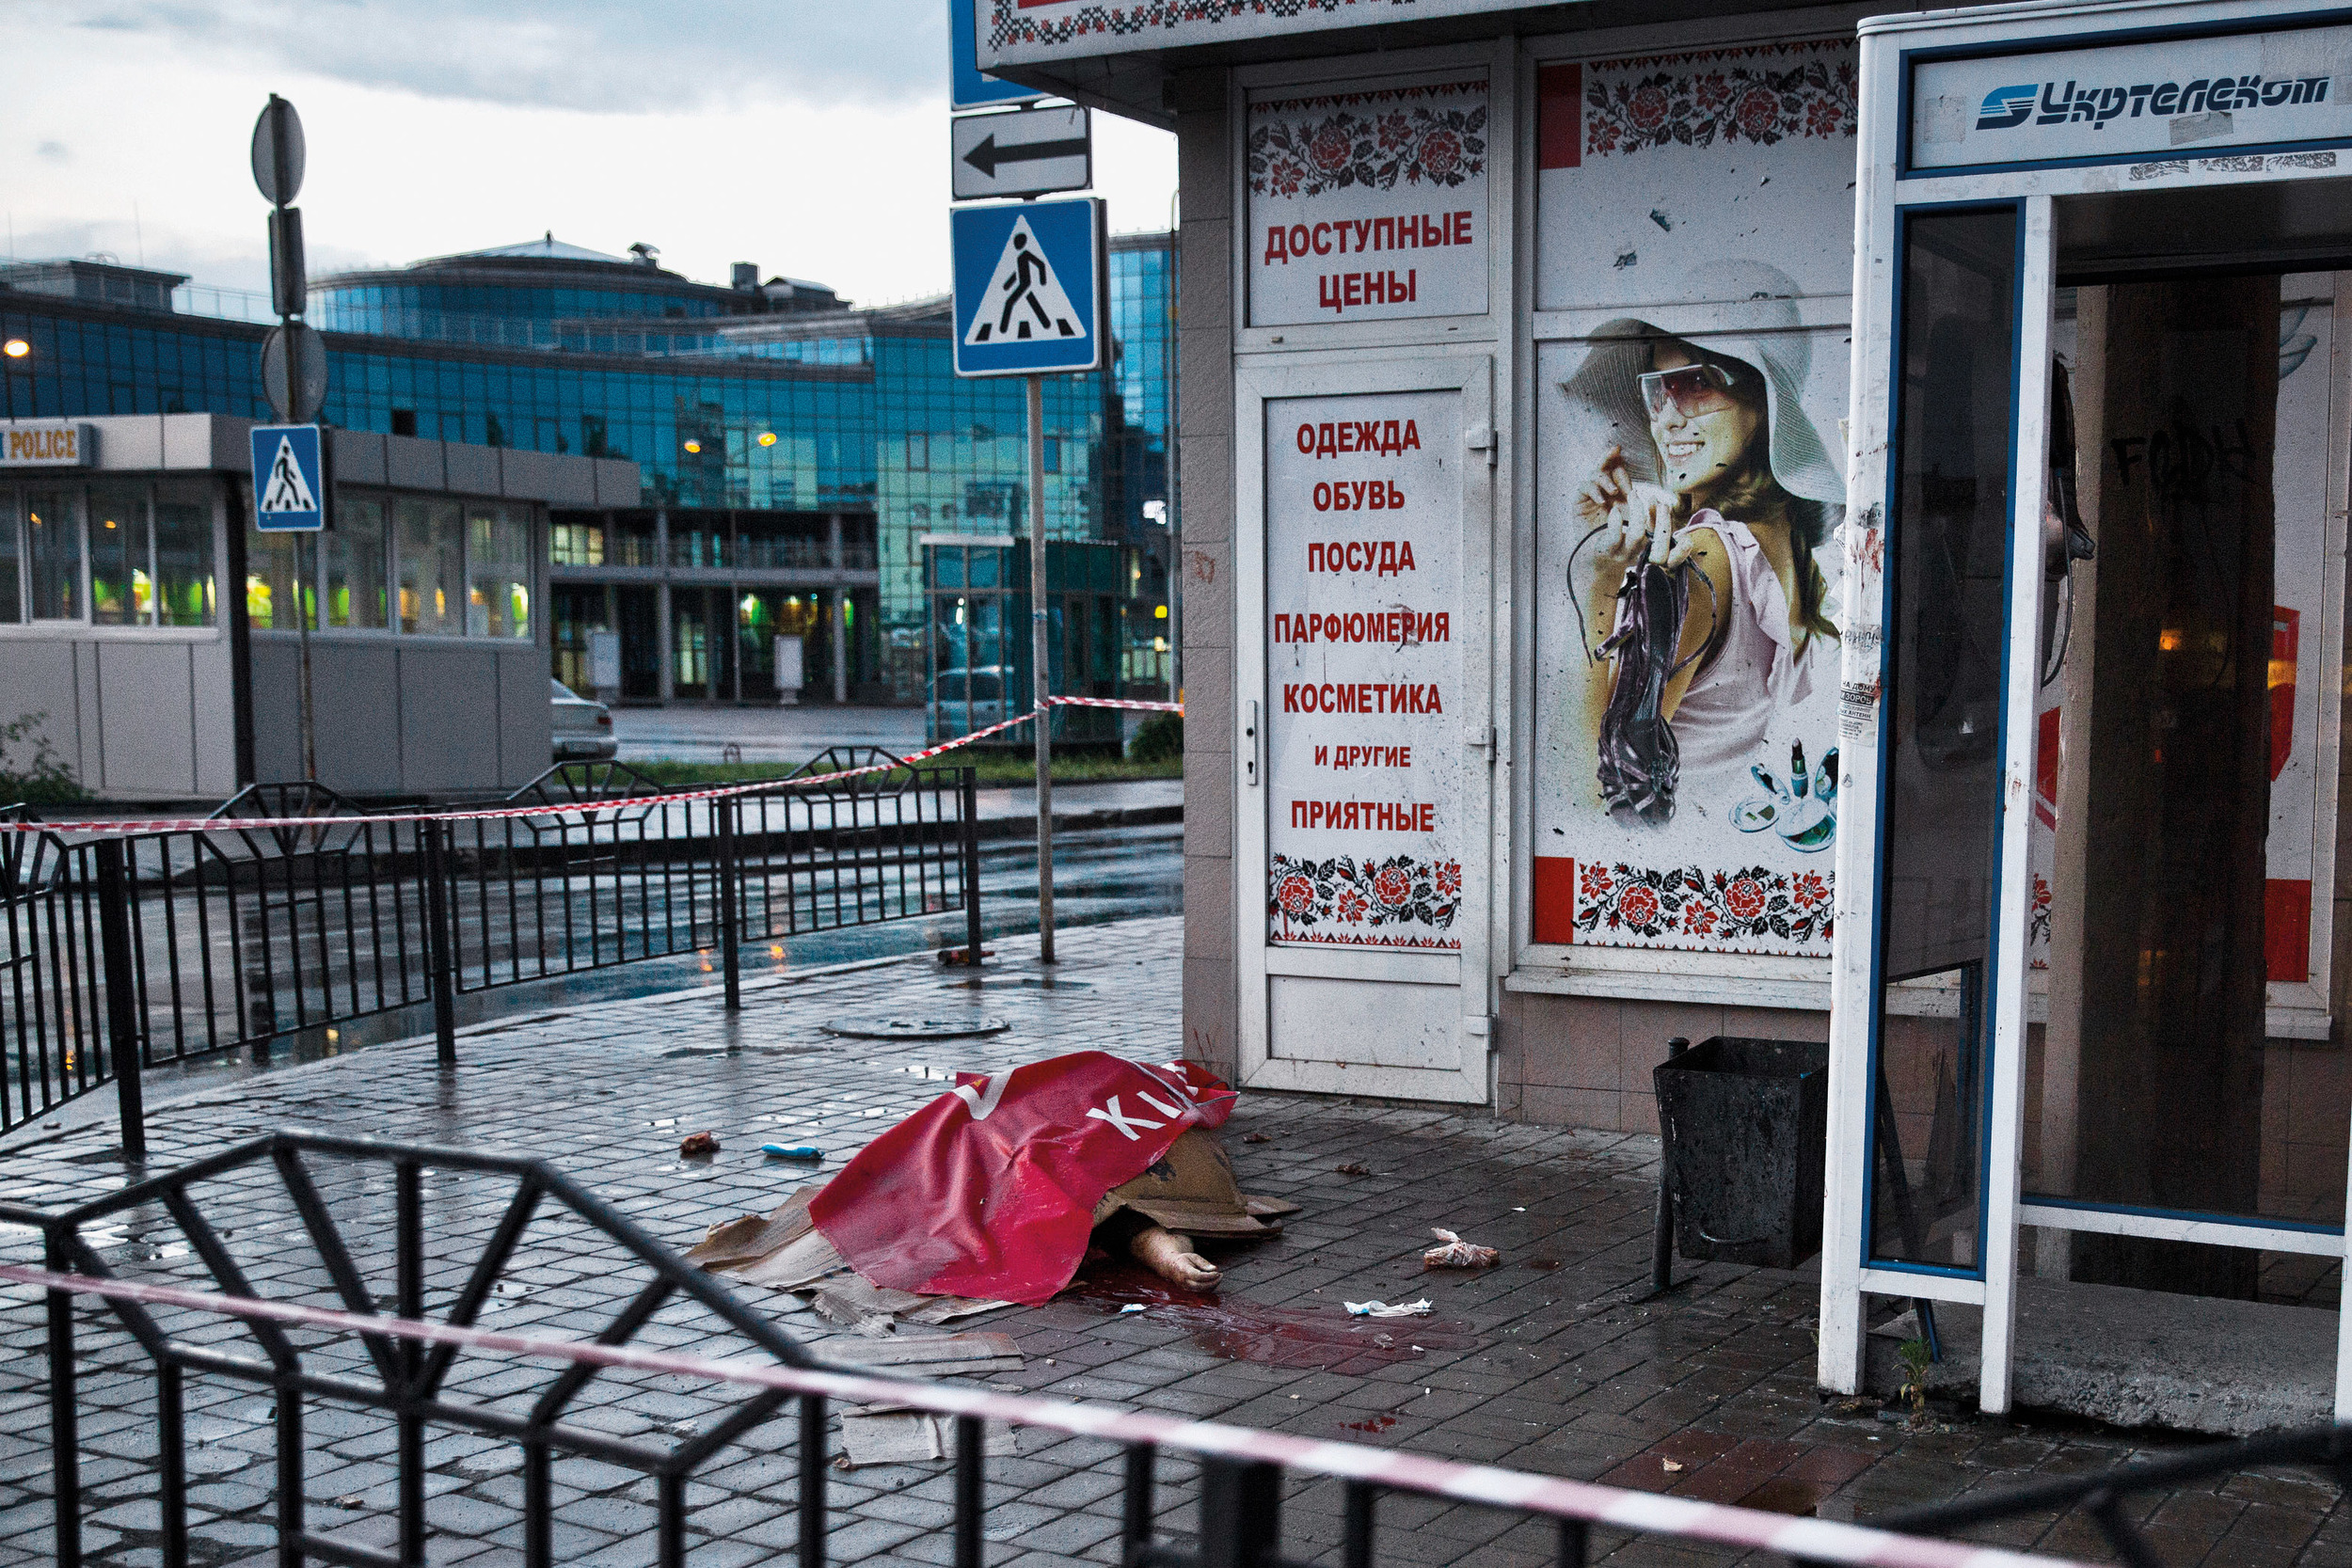 A civilian woman is seen dead in Donetsk